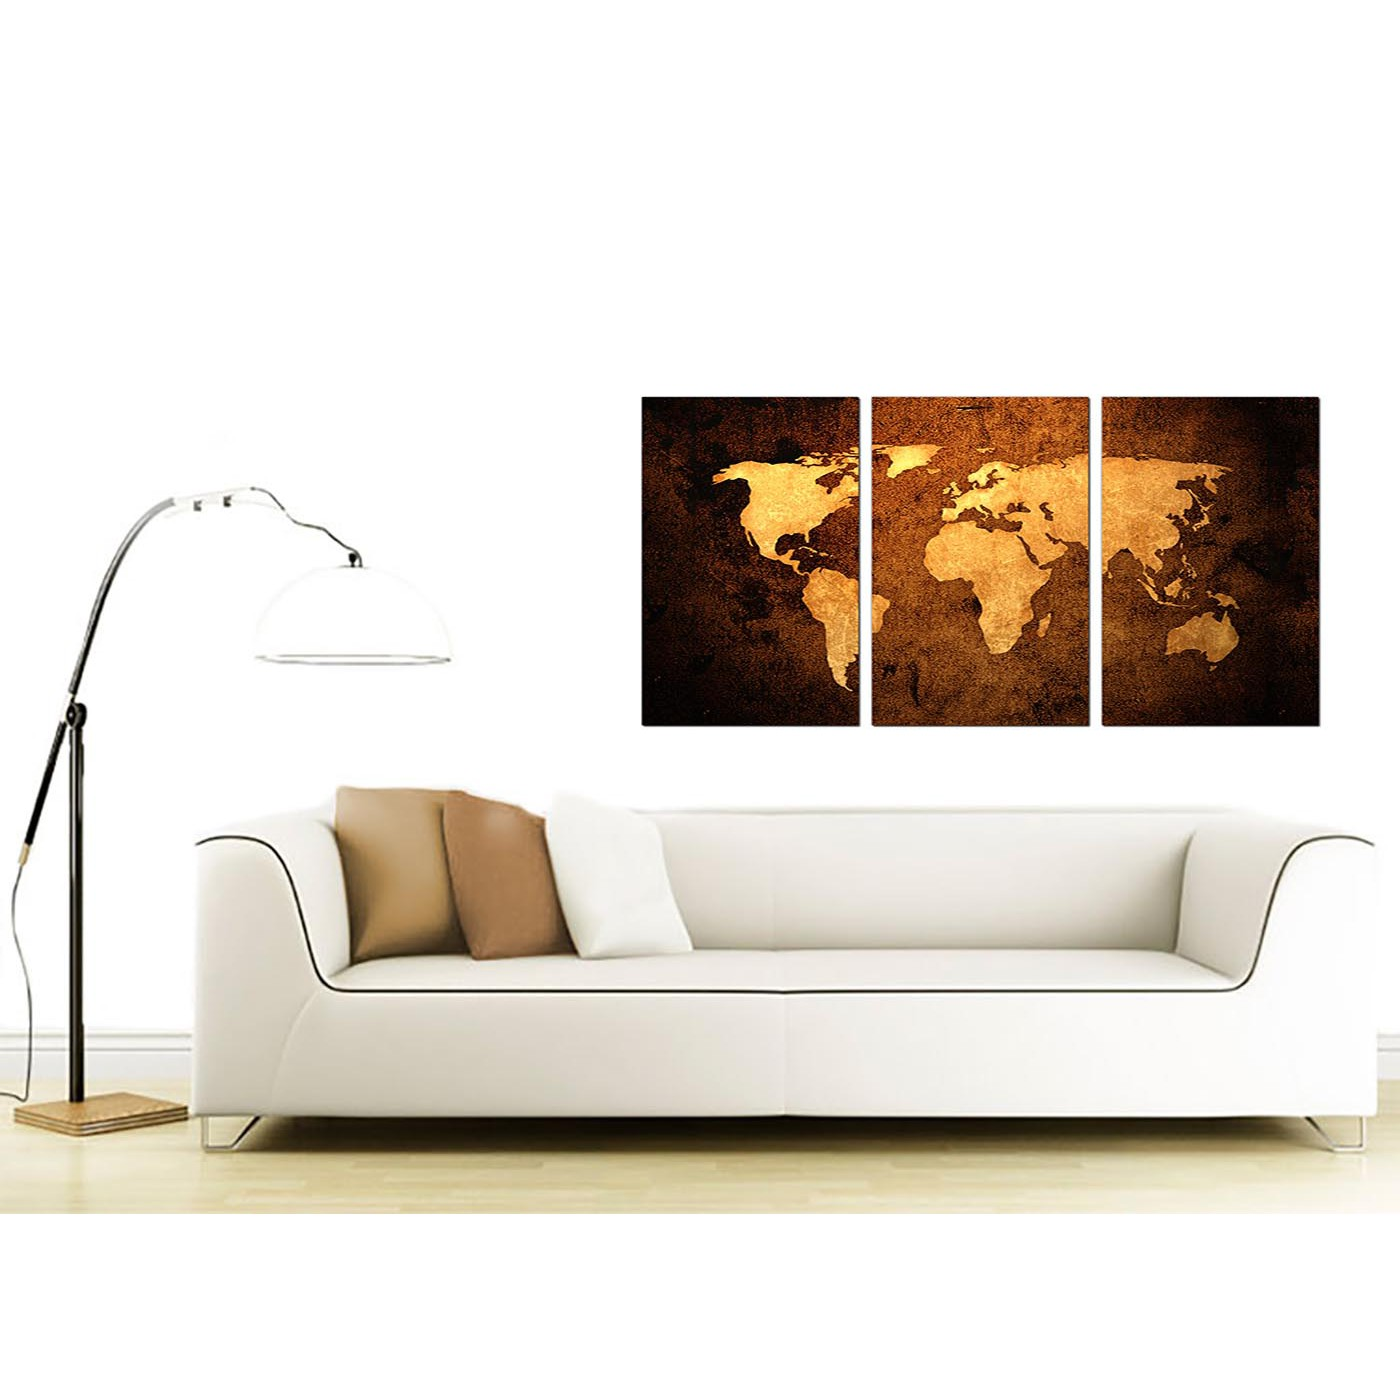 Display Gallery Item 4; 3 Panel World Map Canvas Wall Art 125cm X 60cm 3188  Display Gallery Item 5 ...